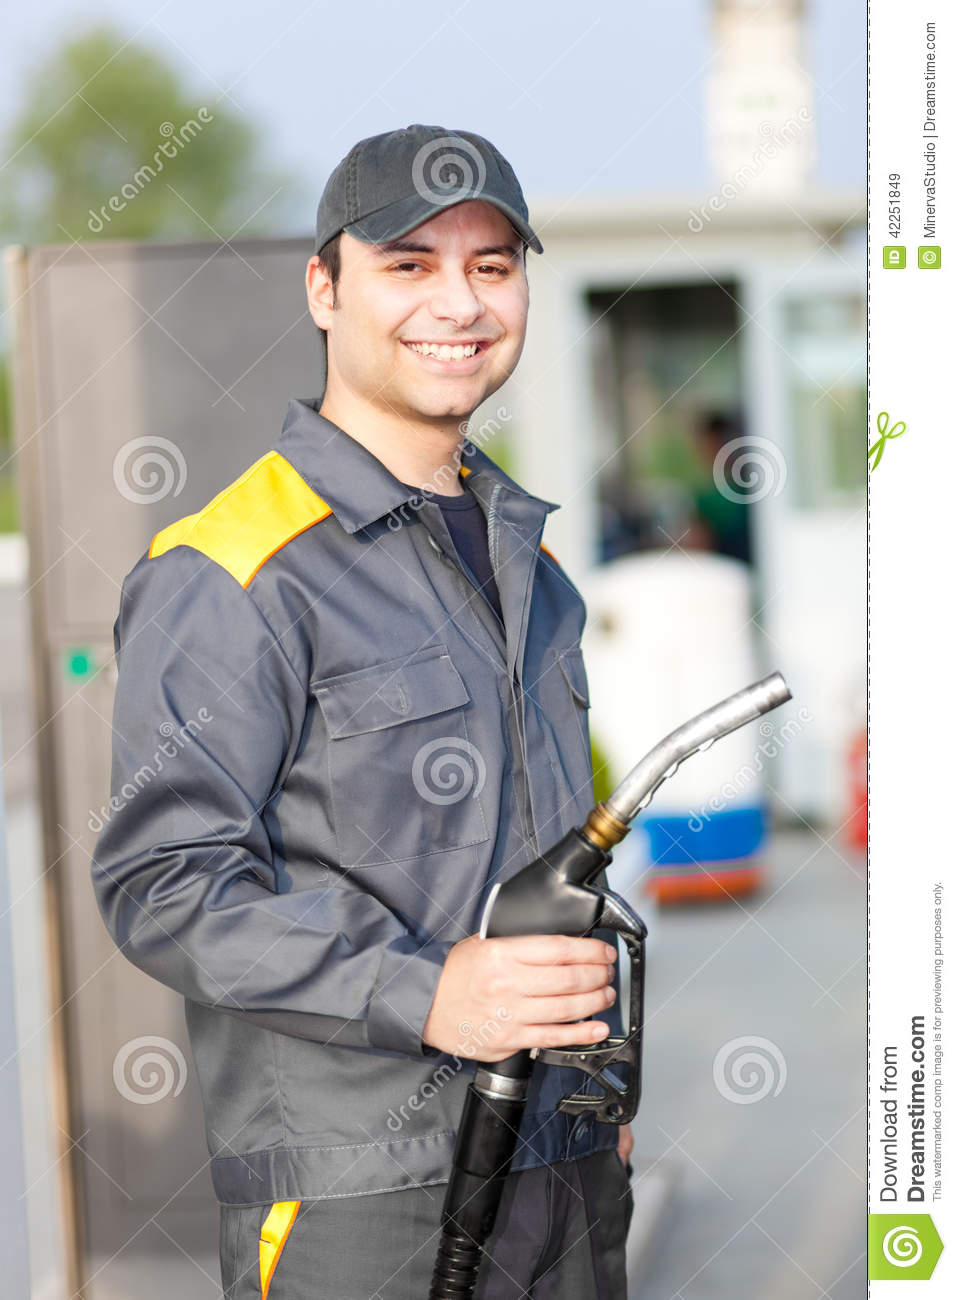 Smiling Gas Station Worker Holding A Fuel Nozzle Stock Photo ...